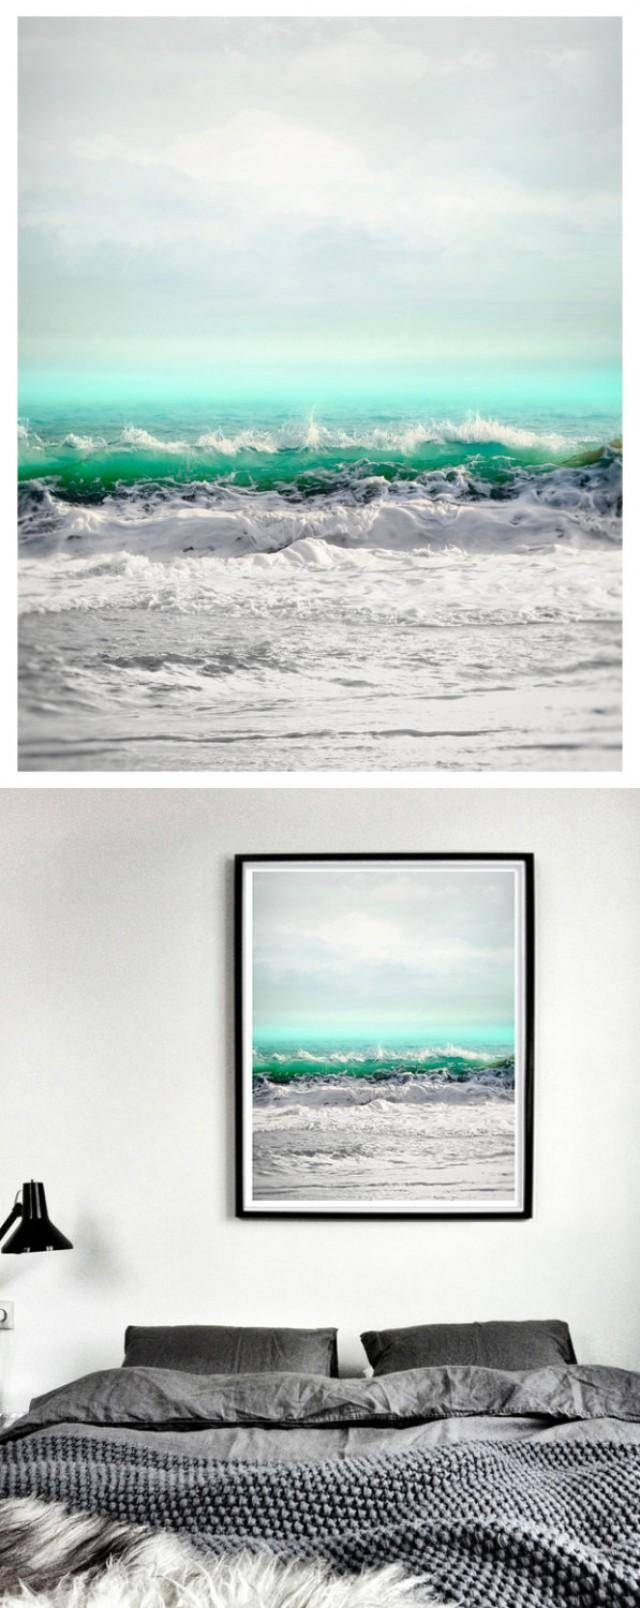 Sea Art Print, Extra Large Wall Art, Seascape Art, Oversized Ocean Throughout Best And Newest Extra Large Wall Art Prints (View 18 of 20)